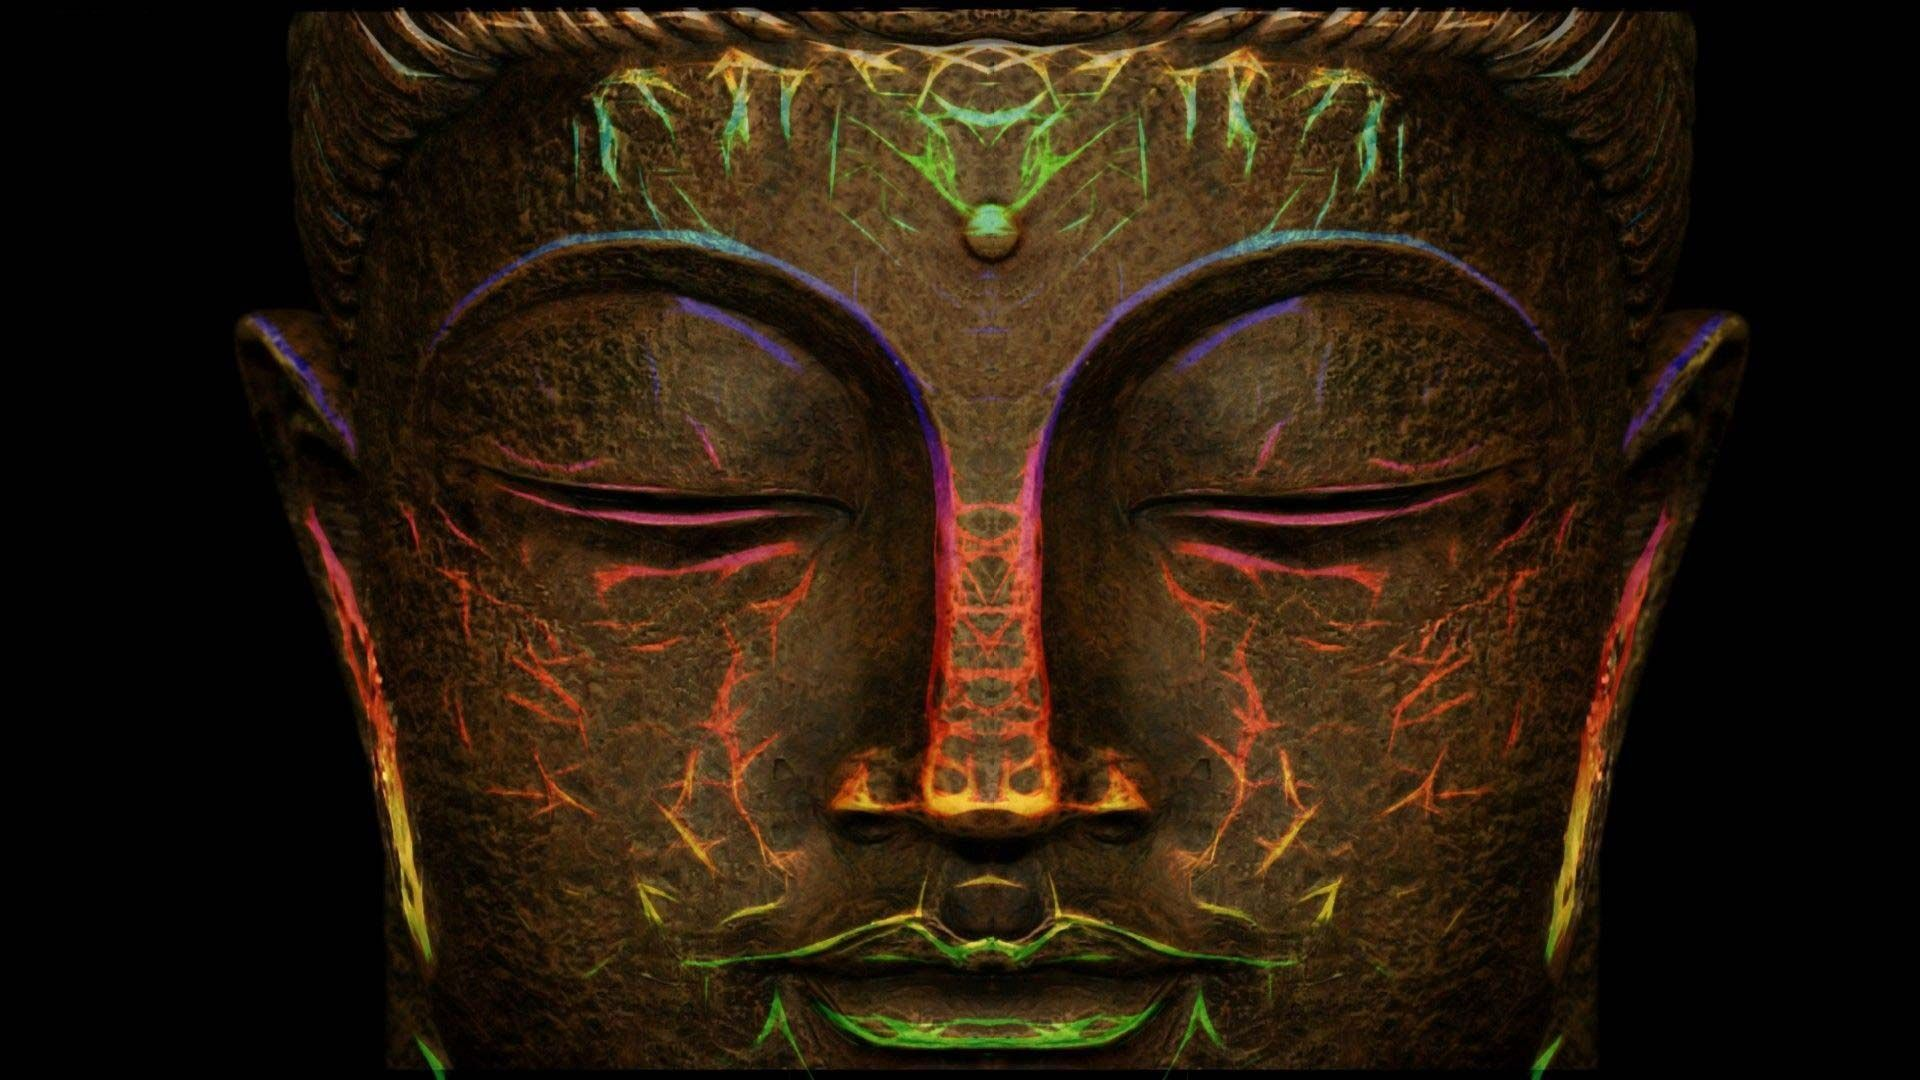 lord buddha wallpapers hd | Lord Buddha Wallpapers | Pinterest ... for Beautiful Buddha Wallpaper  51ane